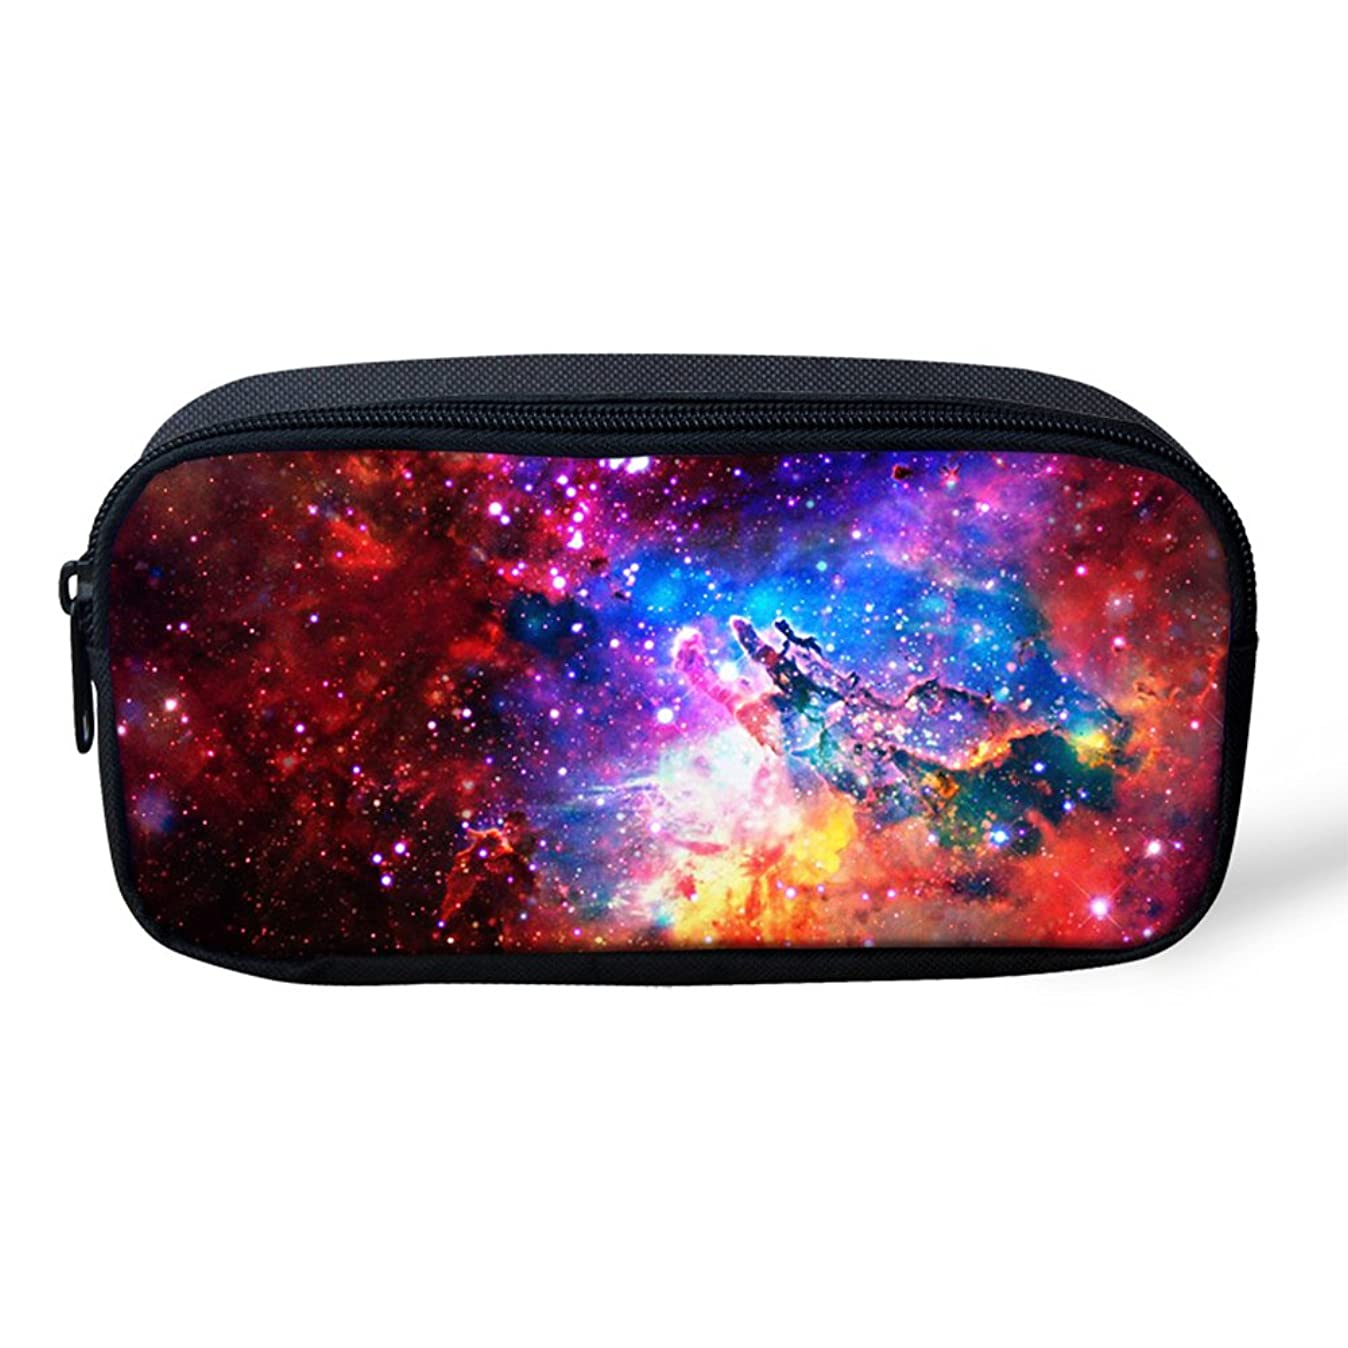 Ledback 3D Galaxy Pencil Box for Boys Multi Color Pencil Bag Children Teens Pen Holder Cosmetic Makeup Bag Women Durable Polyester Stationery Pouch Bag Large Capacity hddaywvyh